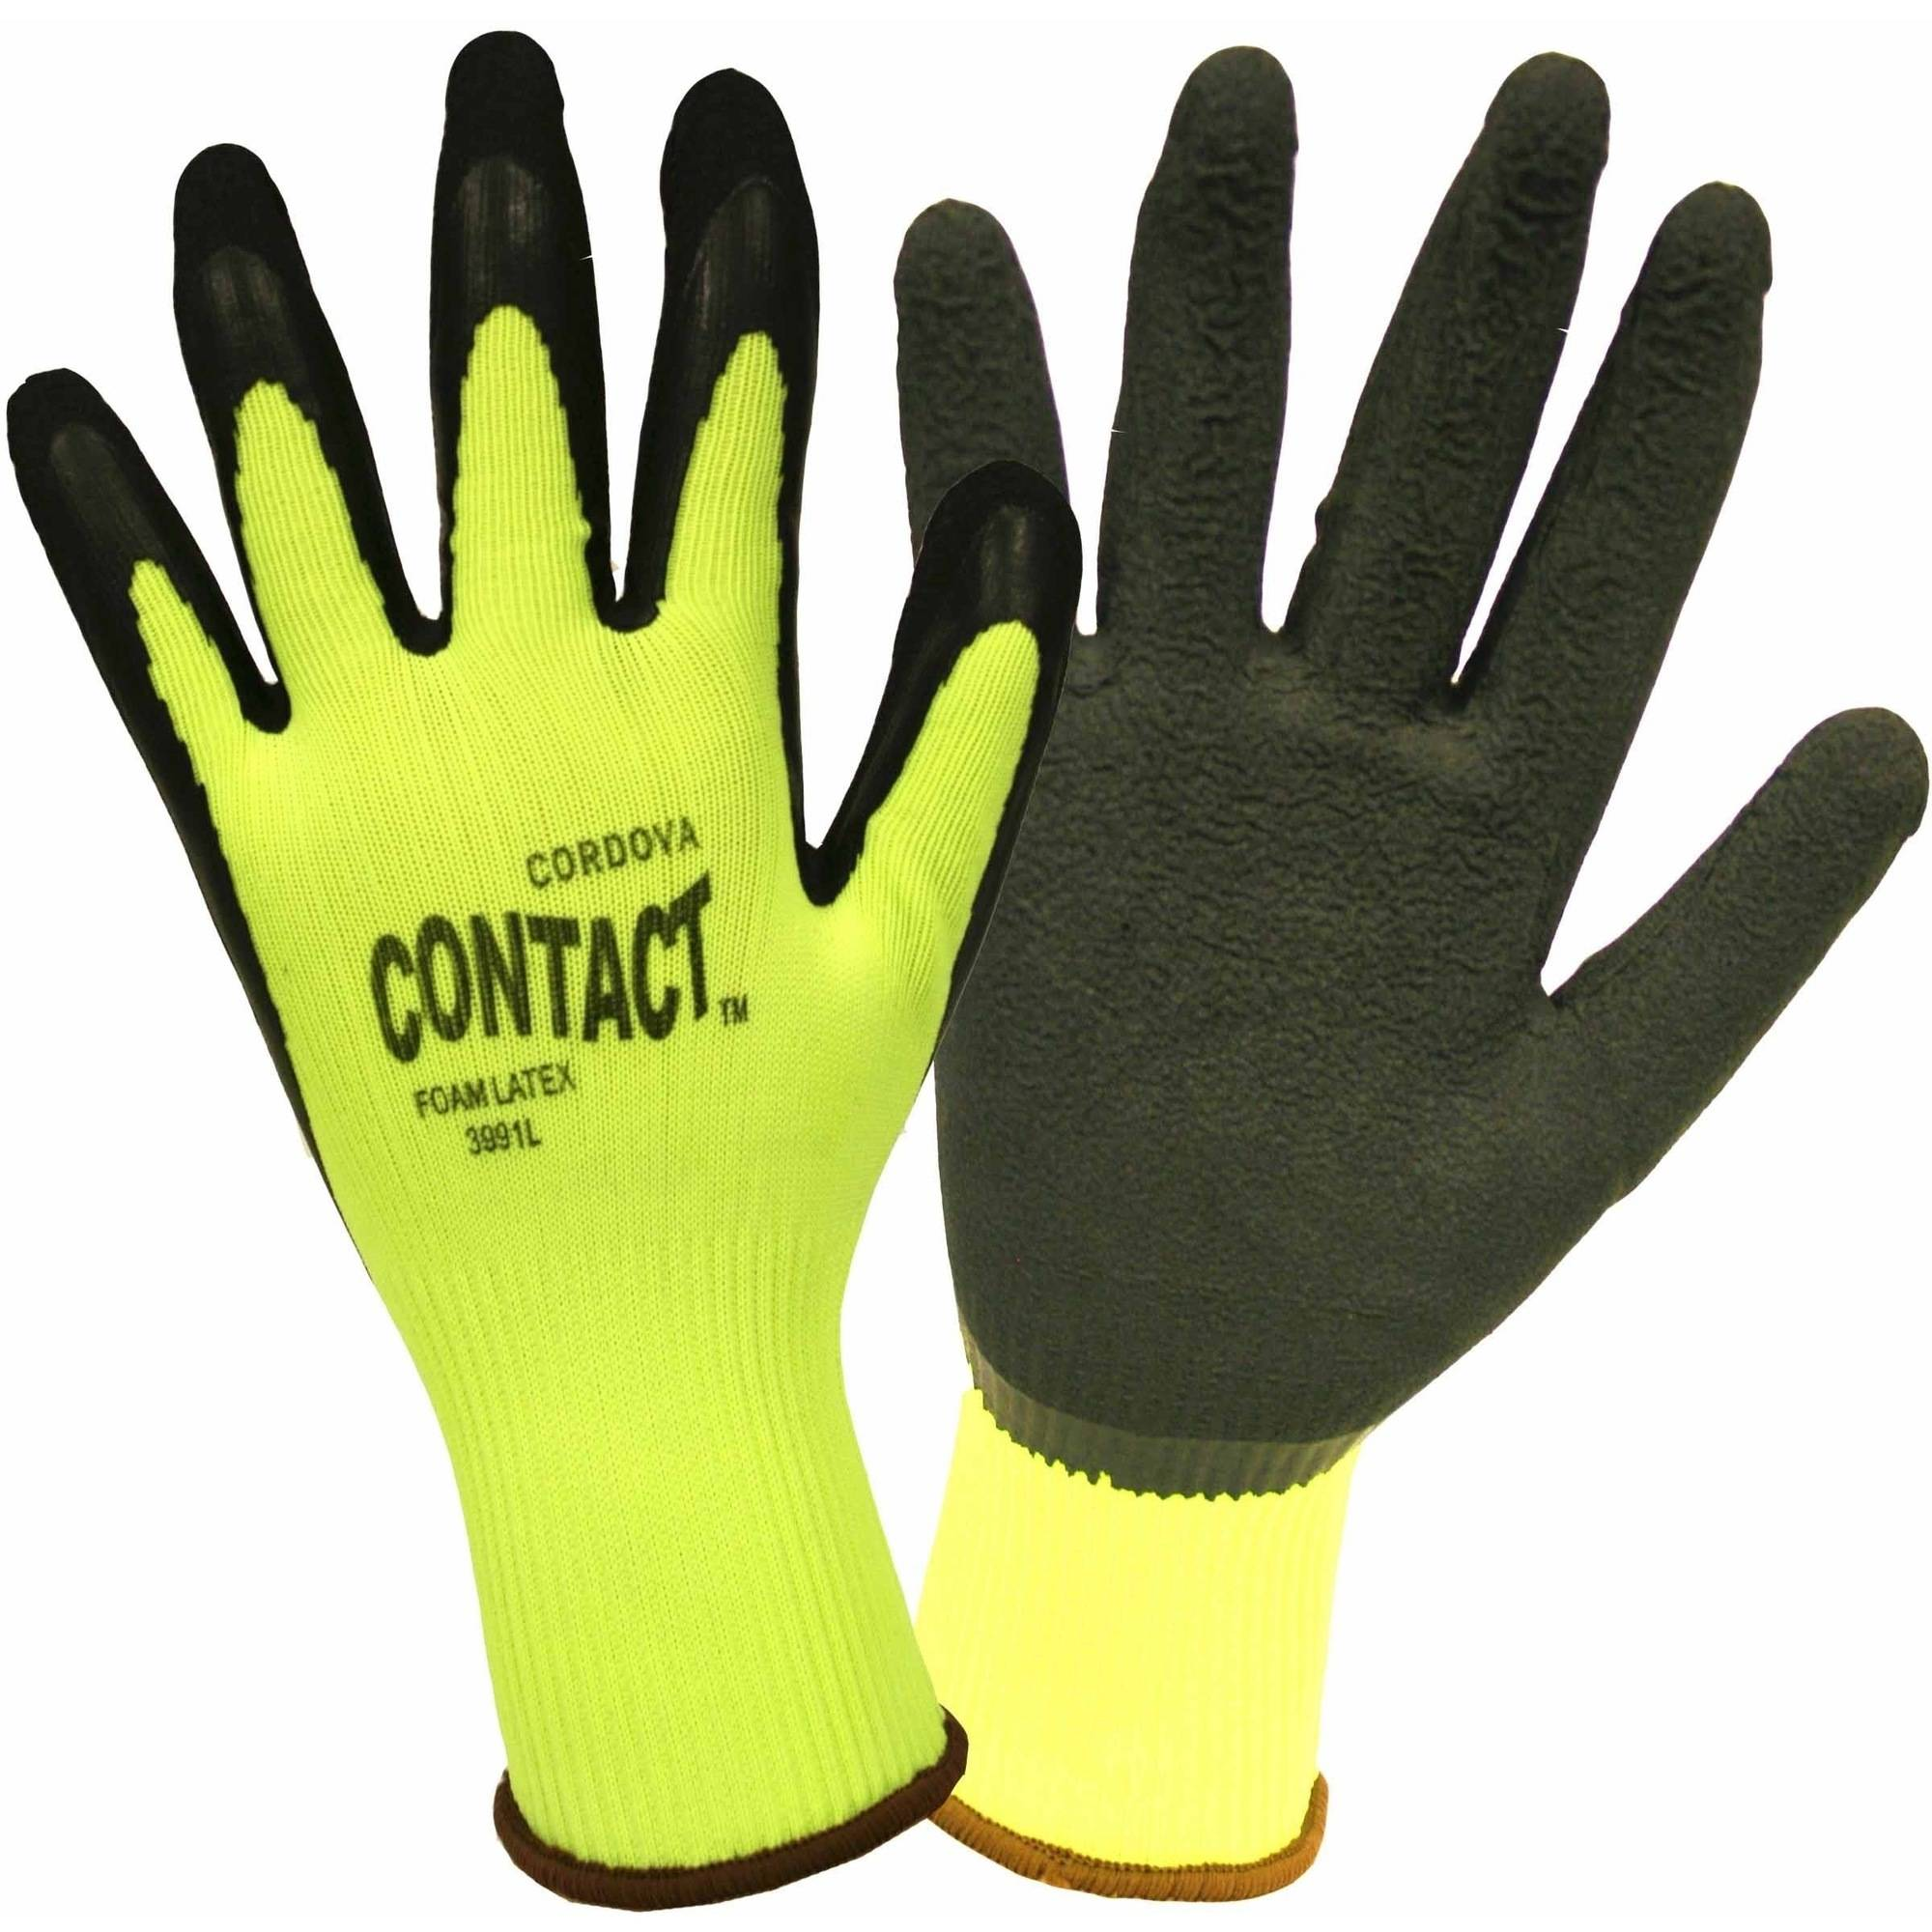 Green Nylon Work Gloves with a Black Foam Latex Palm Coating, Pack of 12 Pairs